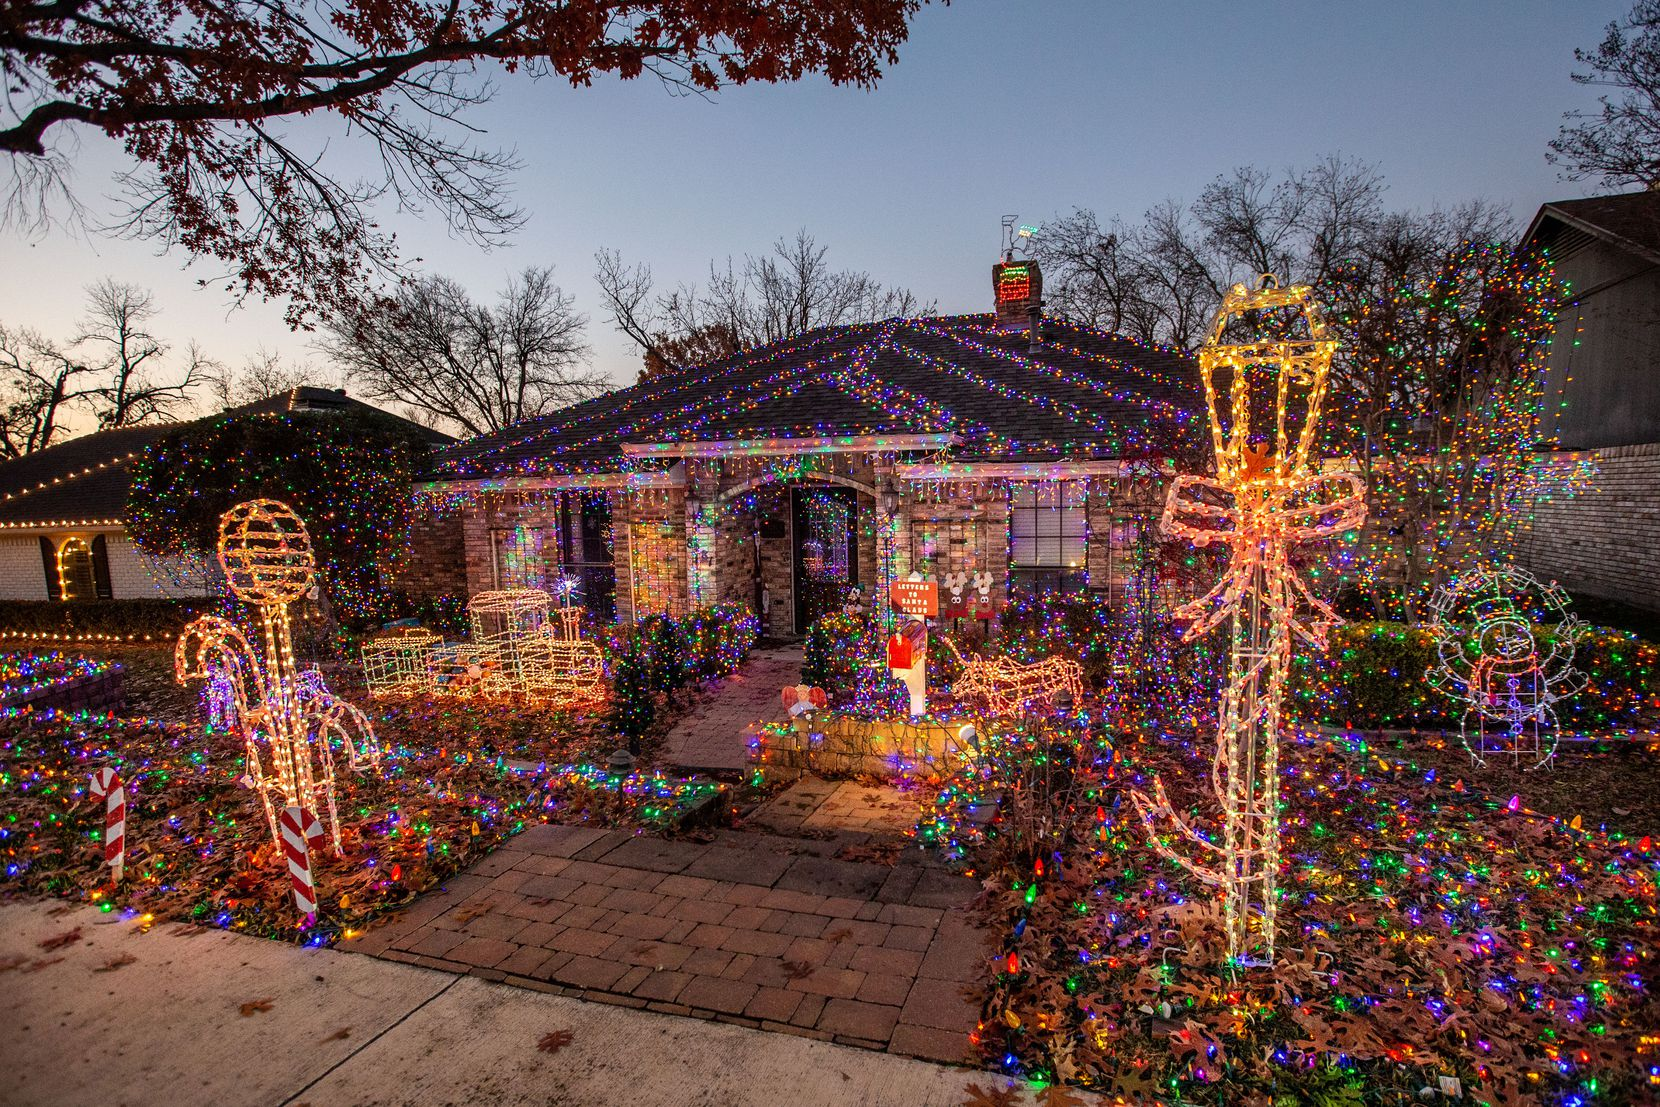 """Jim and Linda Shultz are always on the lookout for additional decorations for their Christmas display. The idea for """"Letters to Santa Claus"""" occurred to them after handyman Jim brought home a neighbor's old mailbox."""